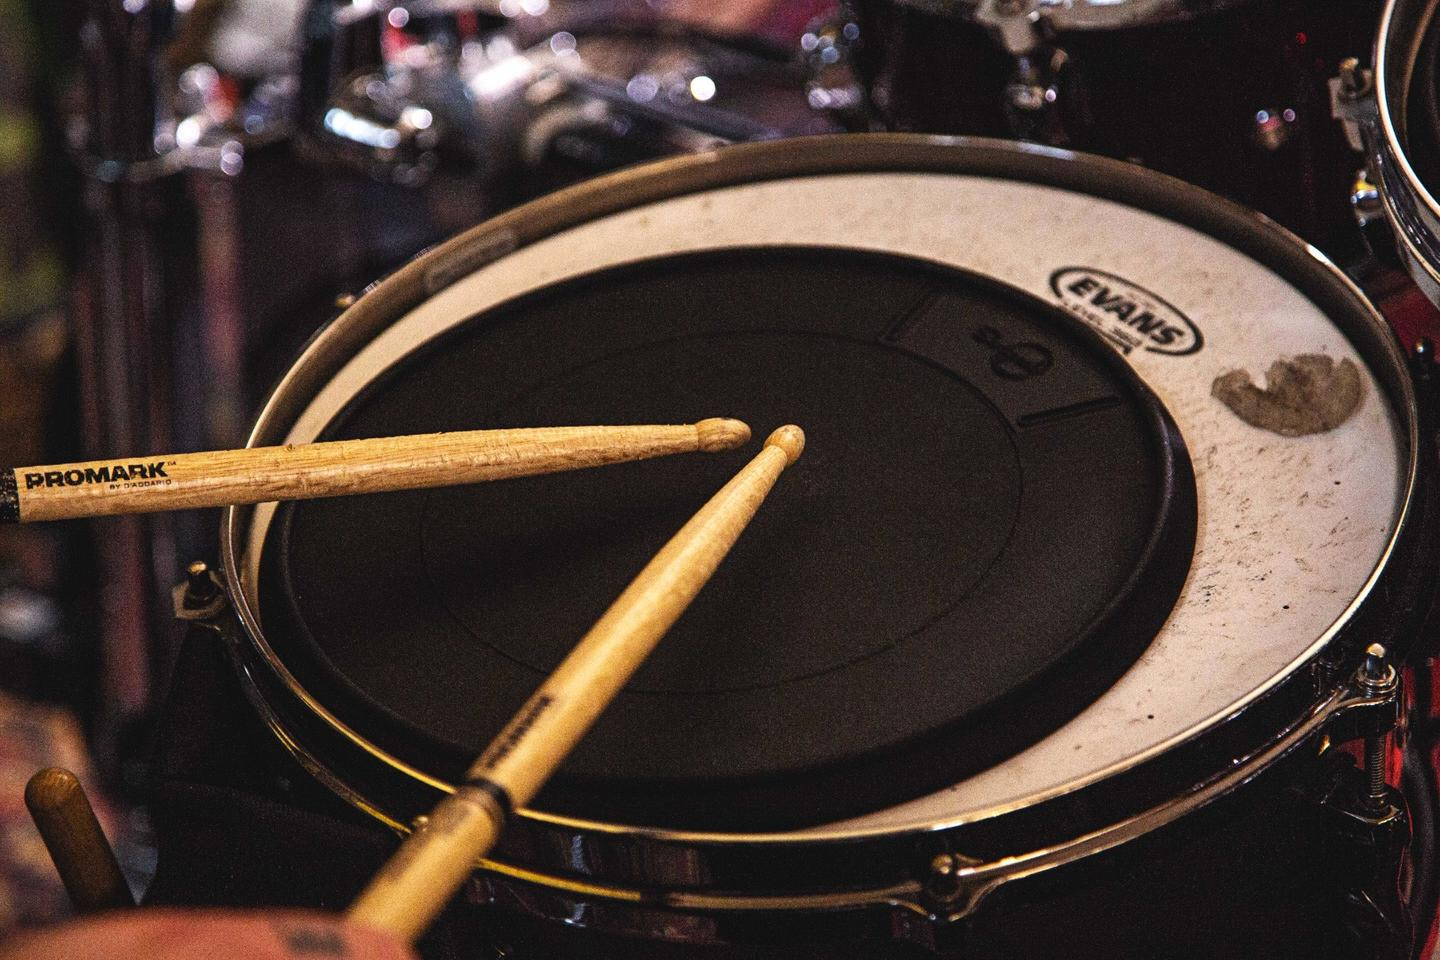 The Senspad could be used to enhance a traditional drum kit, without trailing wires getting in the way